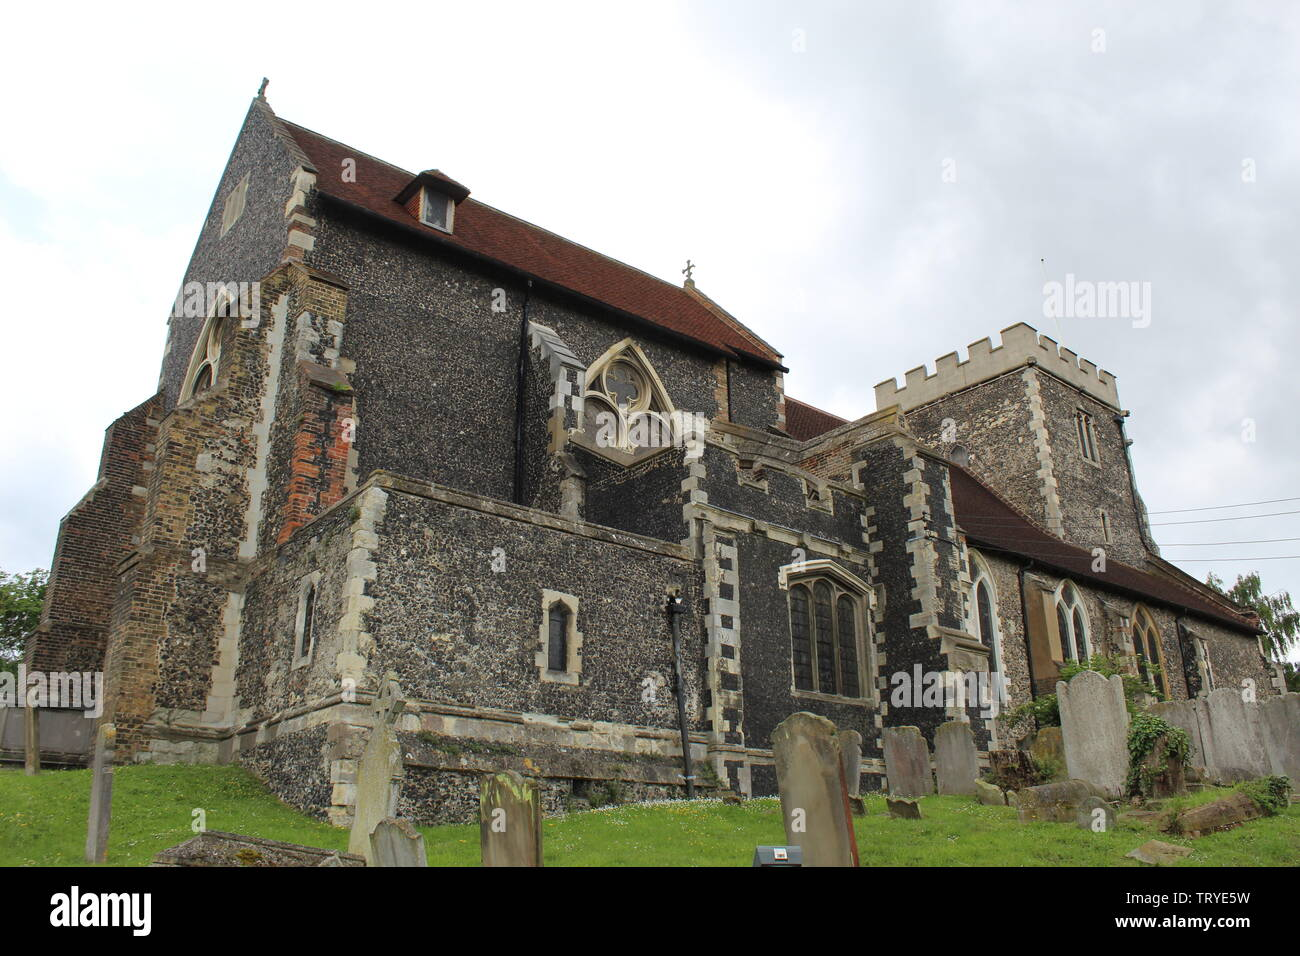 Stone church. - Stock Image